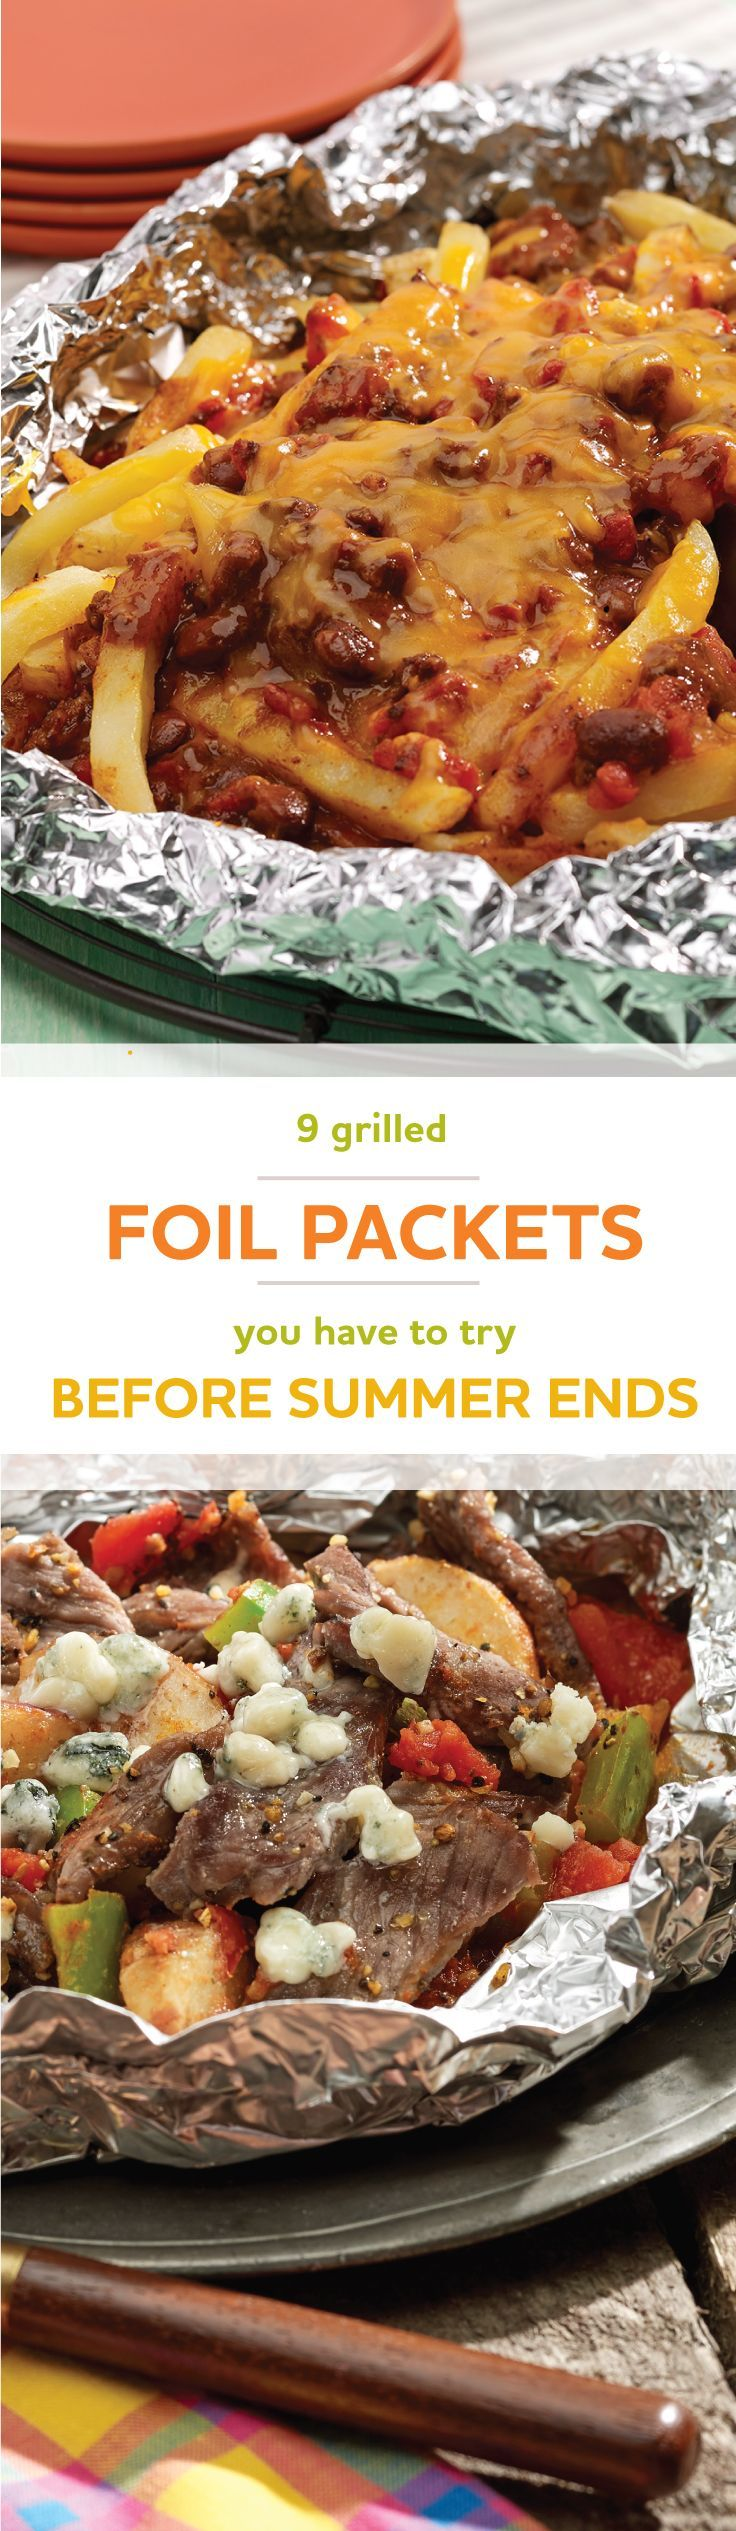 8 Foil Packet Dinners that Practically Clean Up After Themselves #grillingrecipes